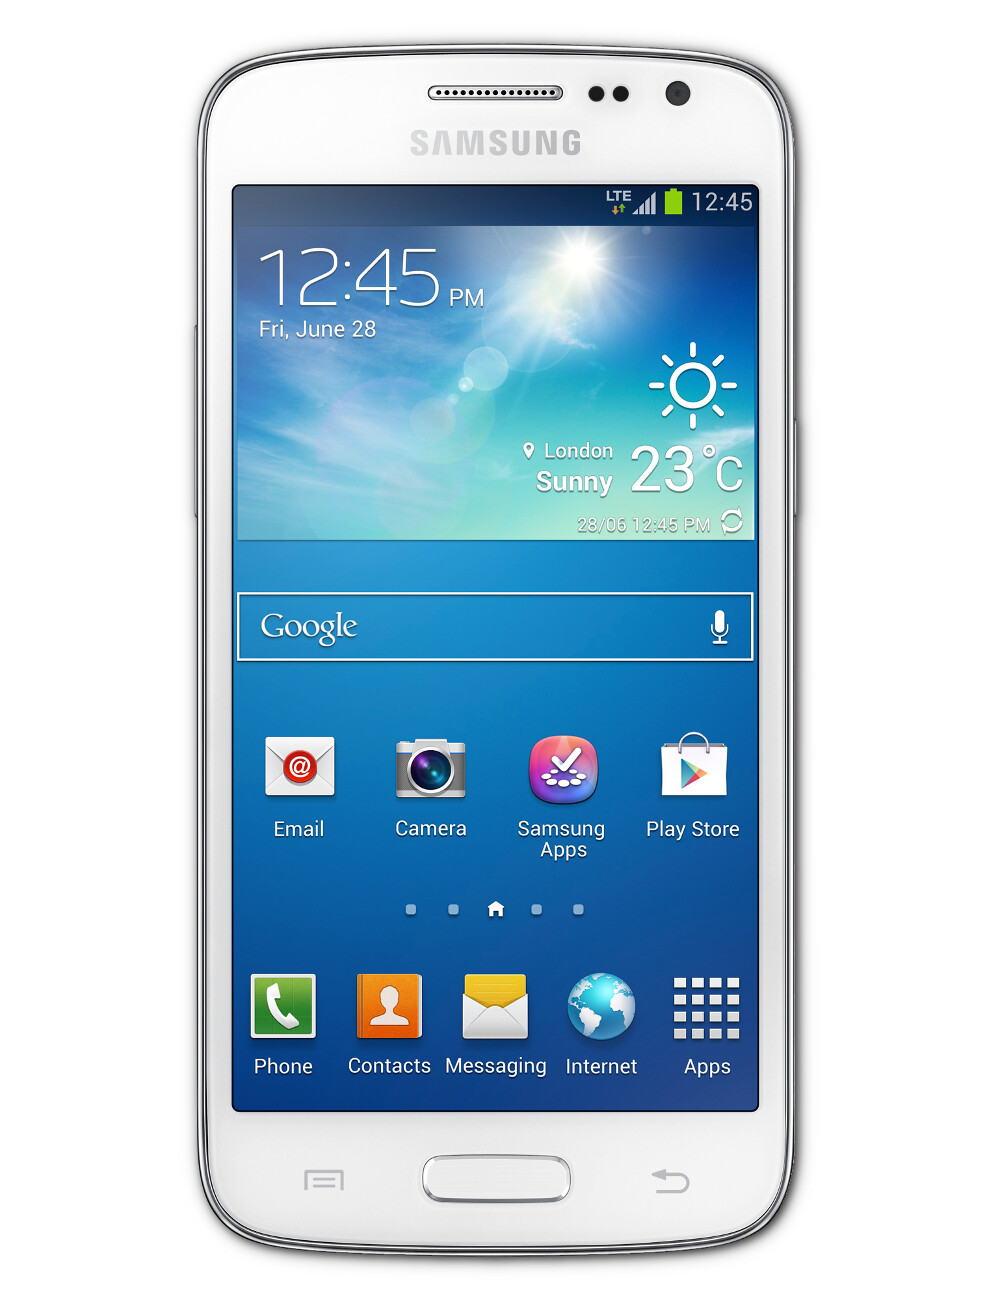 Samsung Galaxy Express 2 id8247 additionally Samsungs 525inch 2k Amoled Screen Enters Mass Production together with Samsung galaxy note ii cdma Pictures 5152 also Samsung Galaxy S5 Size  parison Vs Galaxy Note 3 Vs Galaxy S4 Vs Iphone likewise Product. on samsung galaxy s4 sprint